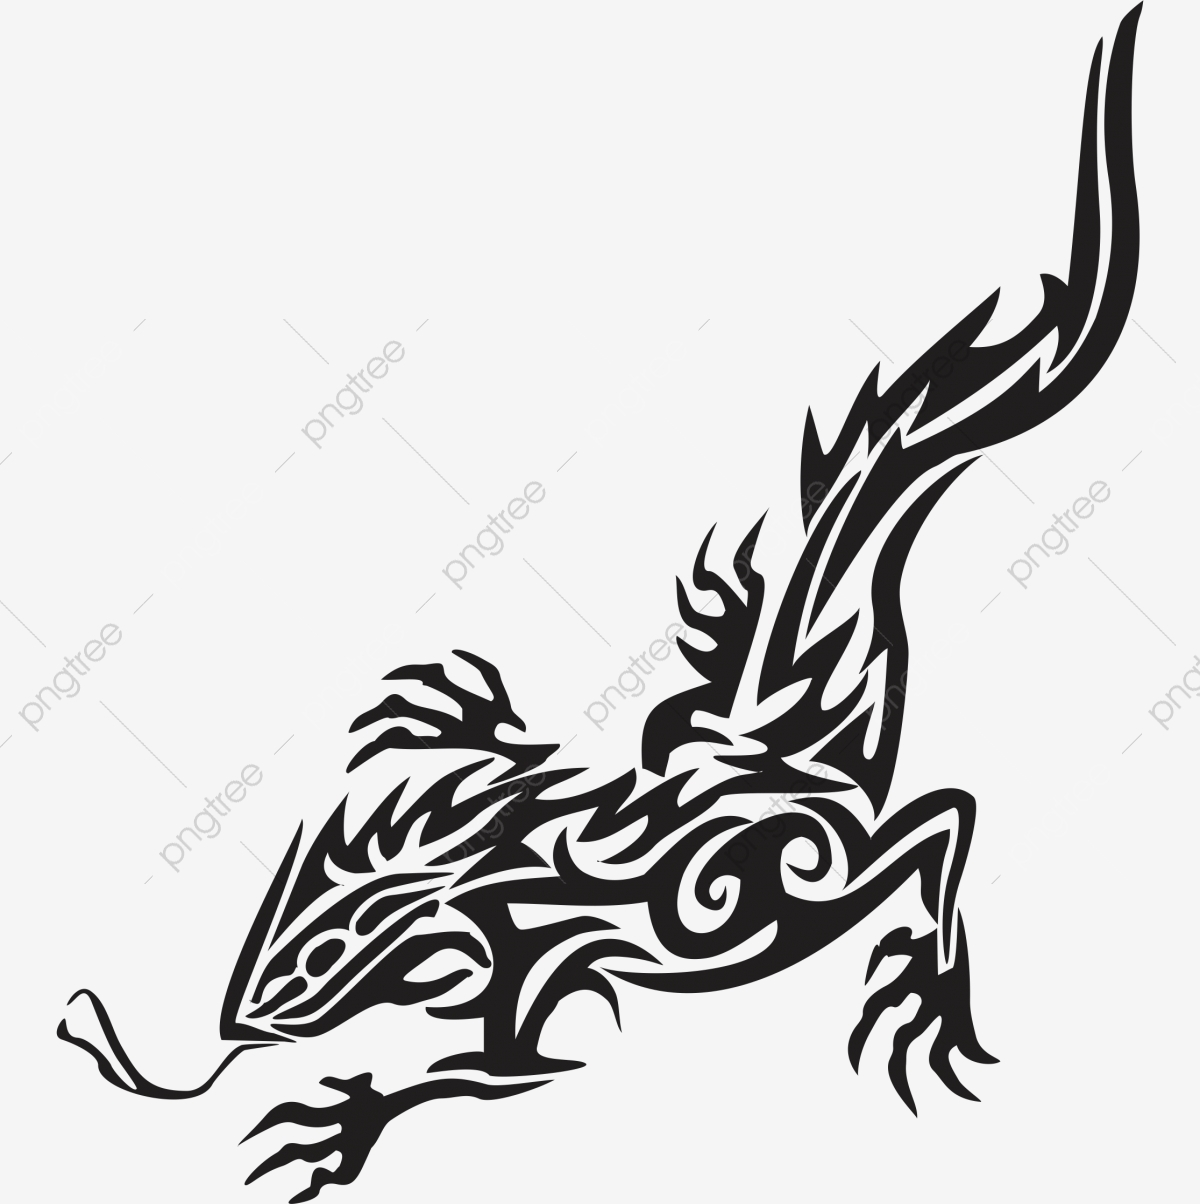 a1d28393e Commercial use resource. Upgrade to Premium plan and get license  authorization.UpgradeNow · Tribal Lizard Iguana Temporary Tattoo ...